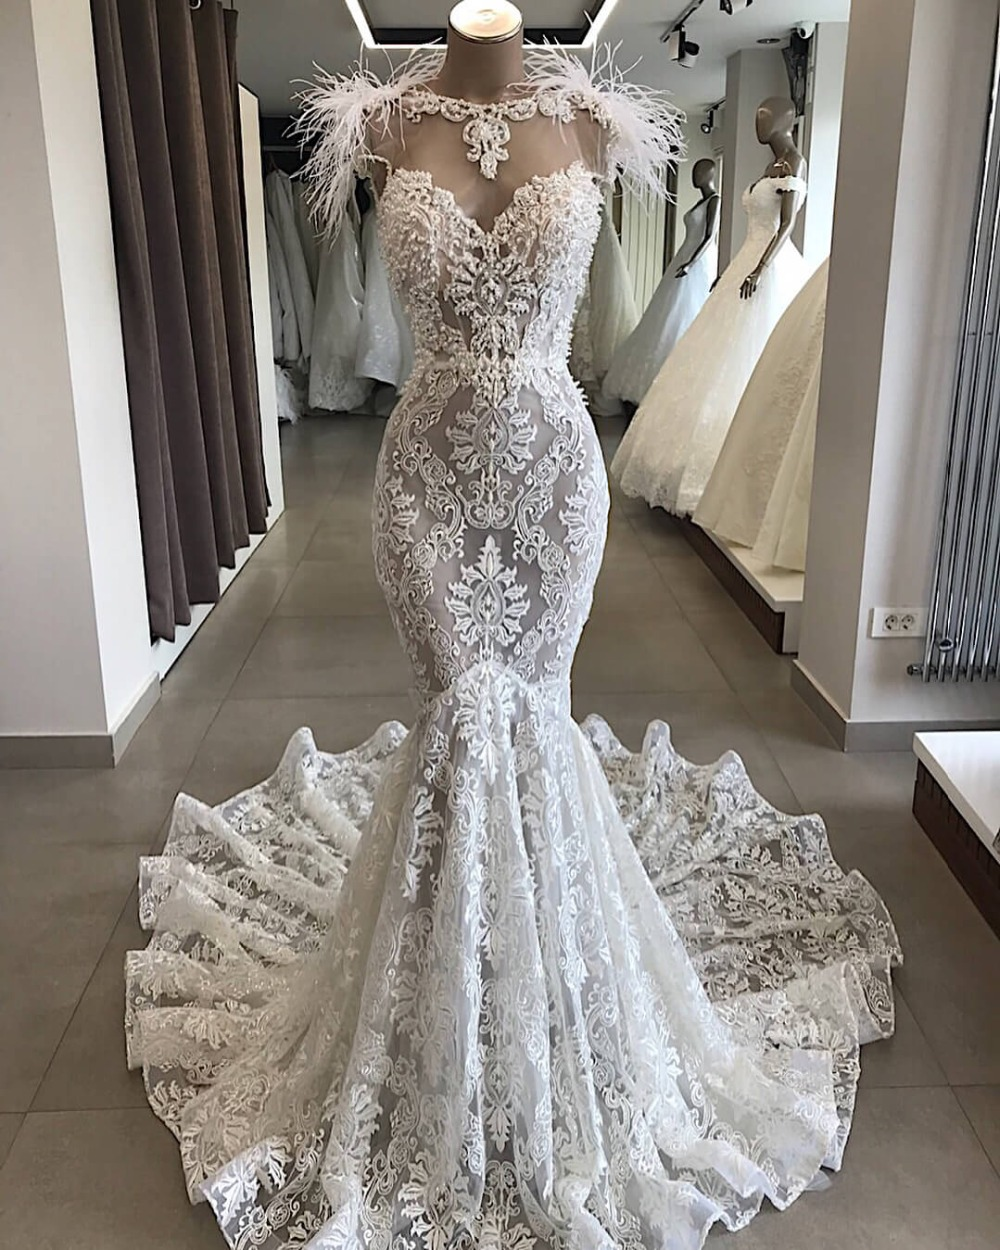 2020 Robe De Mariee Luxurious Wedding Dresses Floor Length Lace Mermaid Custom Made Bridal Gowns Vestido De Novia Sirena